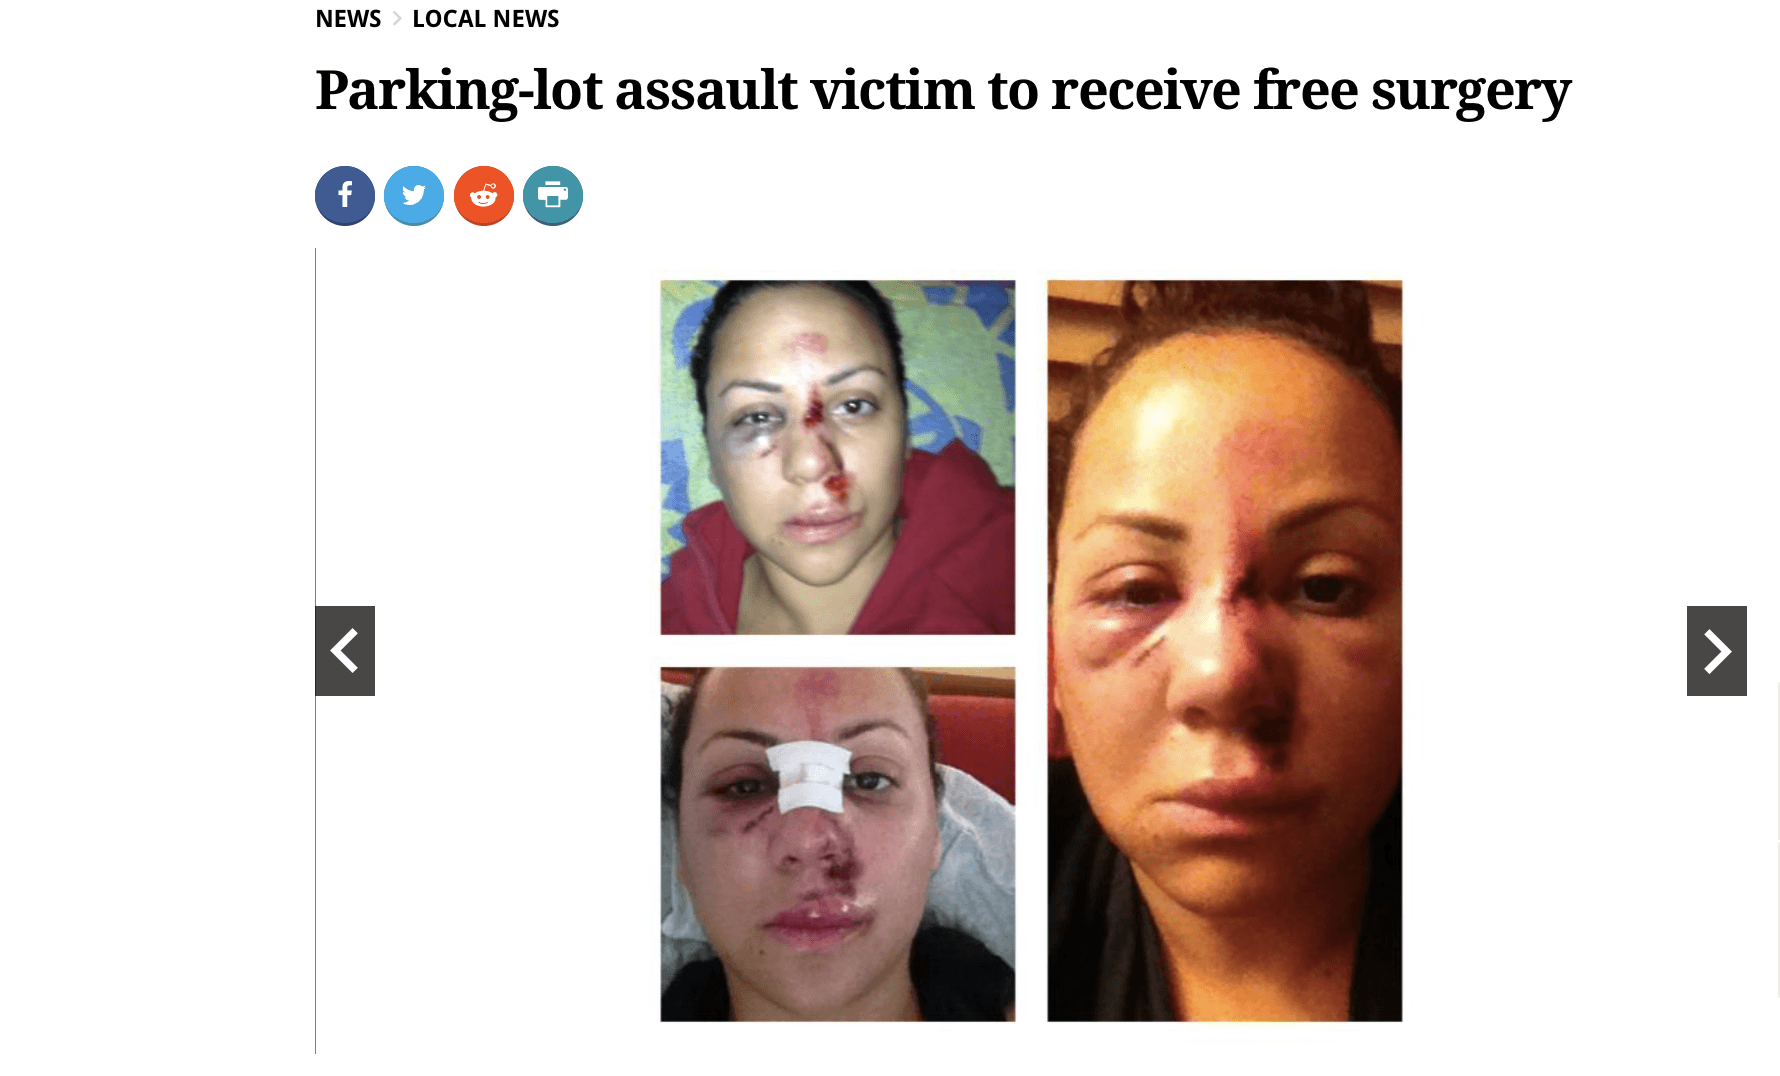 CosmetiCare Docs Donate Surgery to Parking Lot Assault Victim